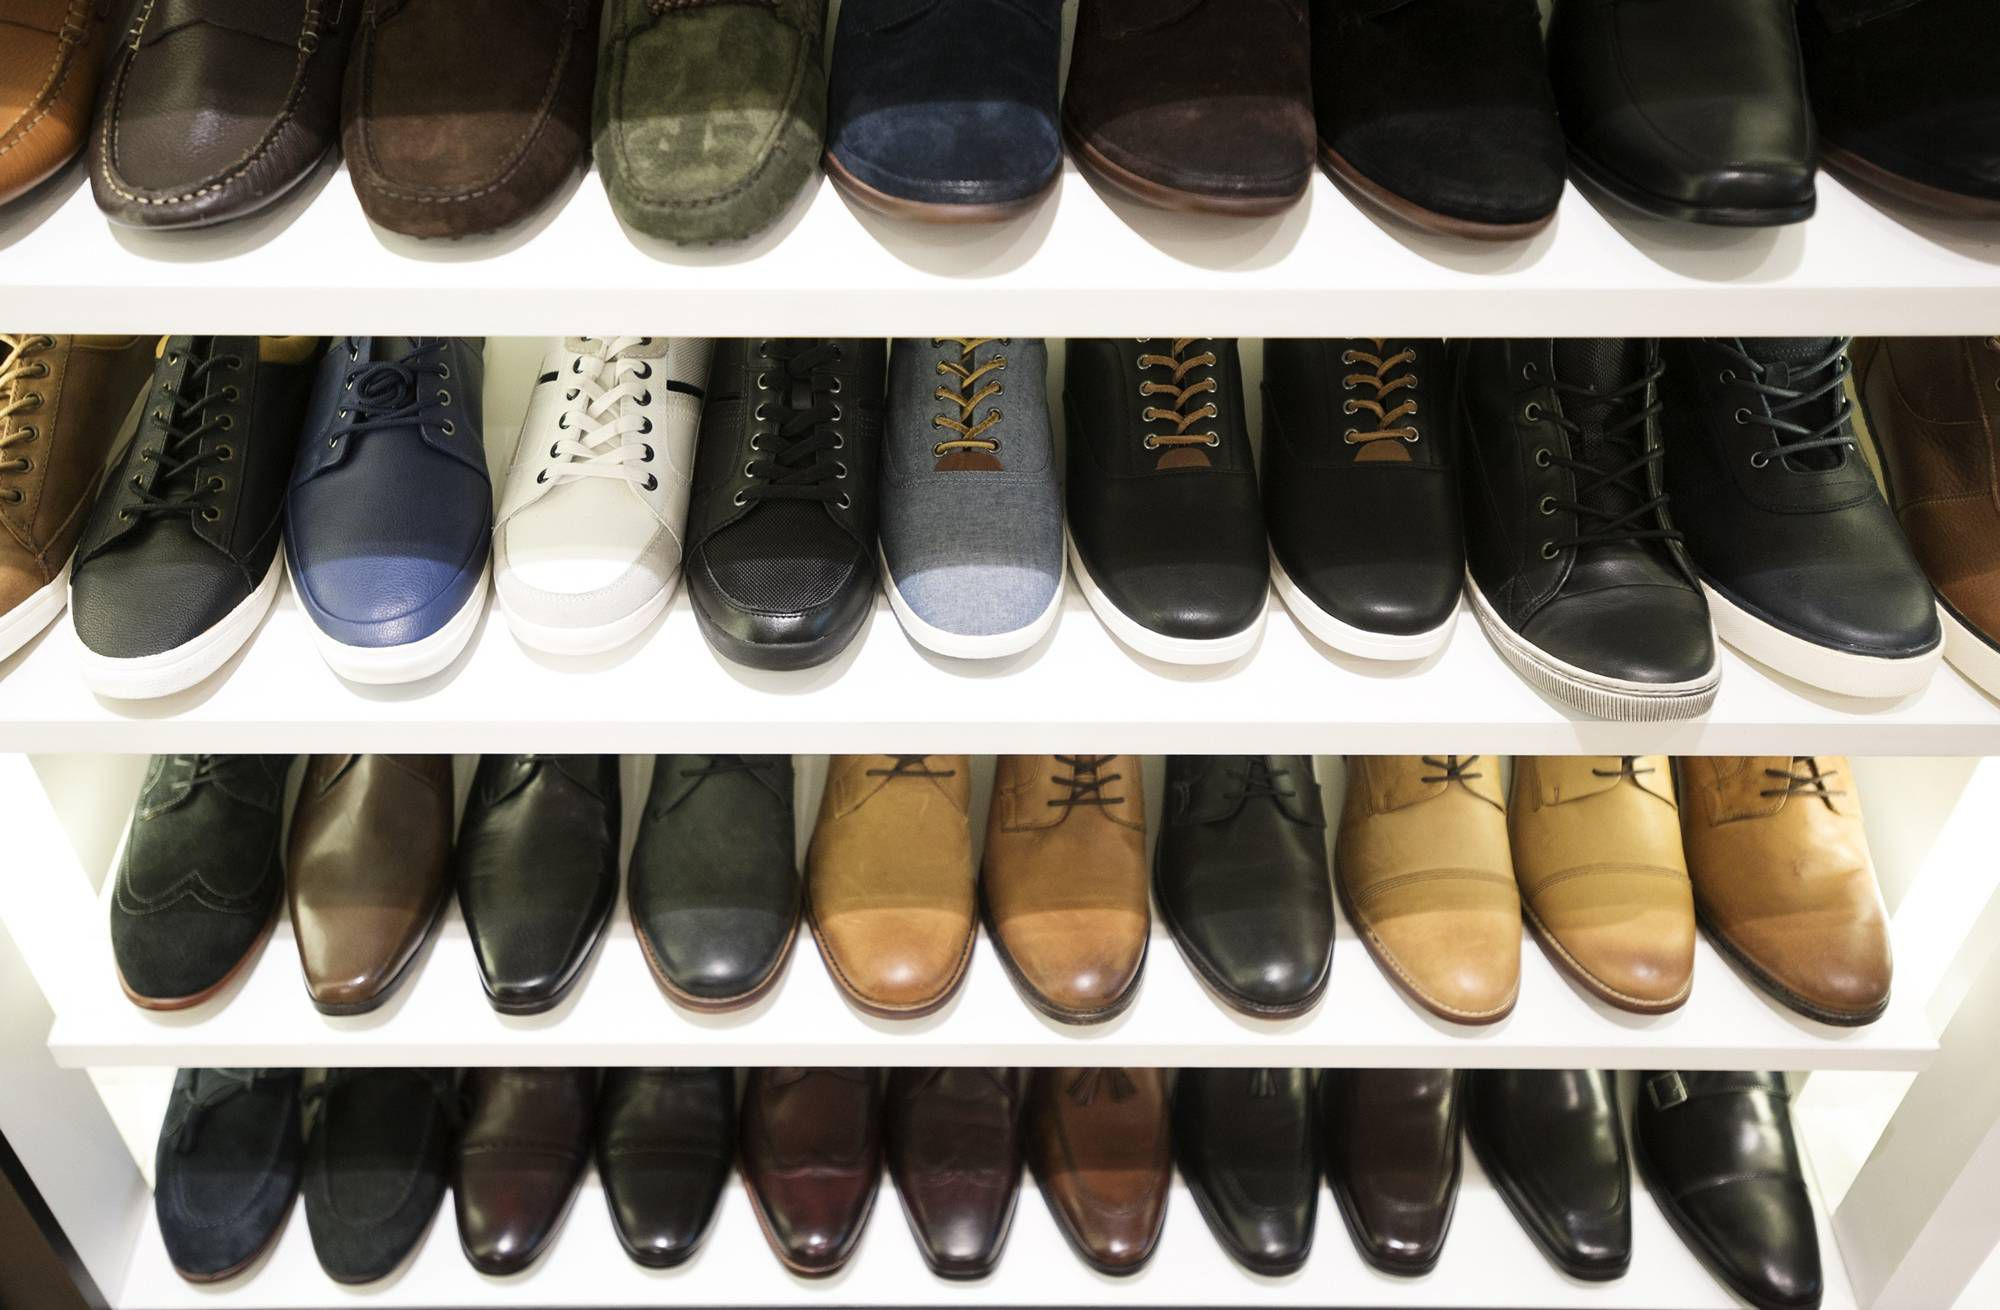 c0668708a0 Aldo's reboot: The shoe giant's bold next steps - The Globe and Mail